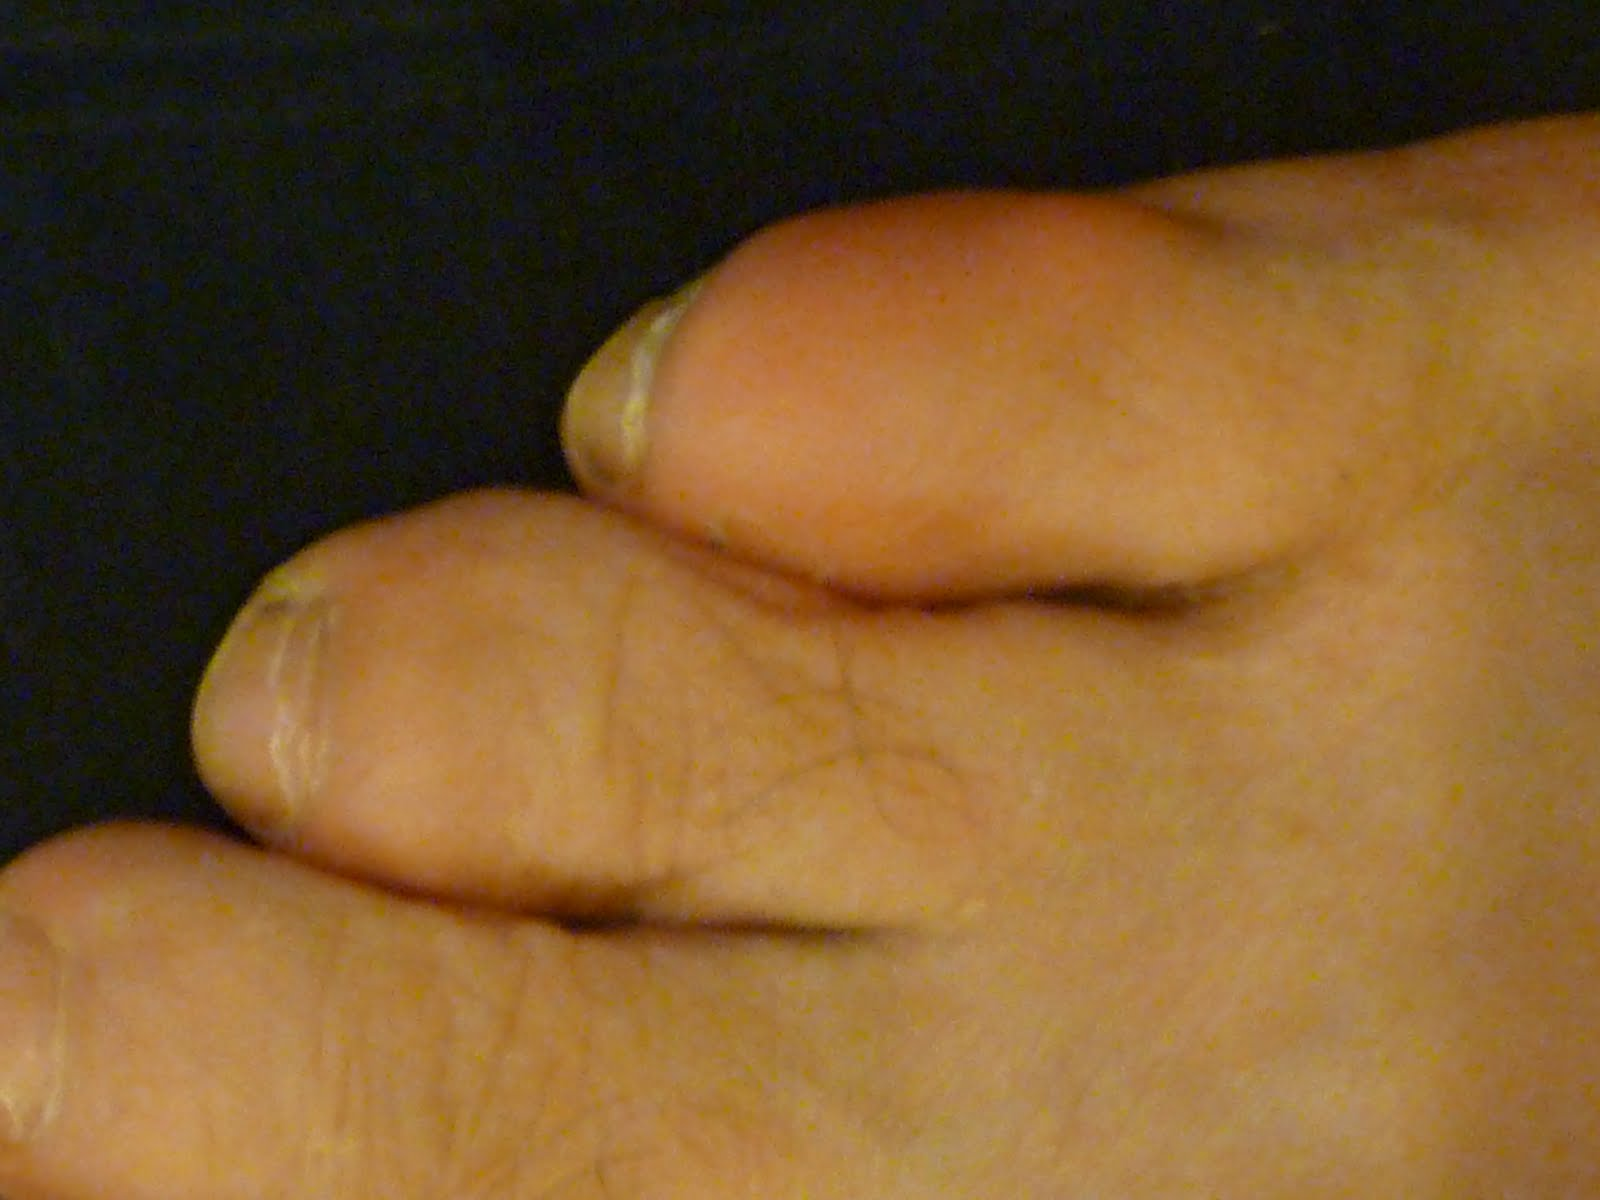 Capsulitis of the second toe, (or any toe)